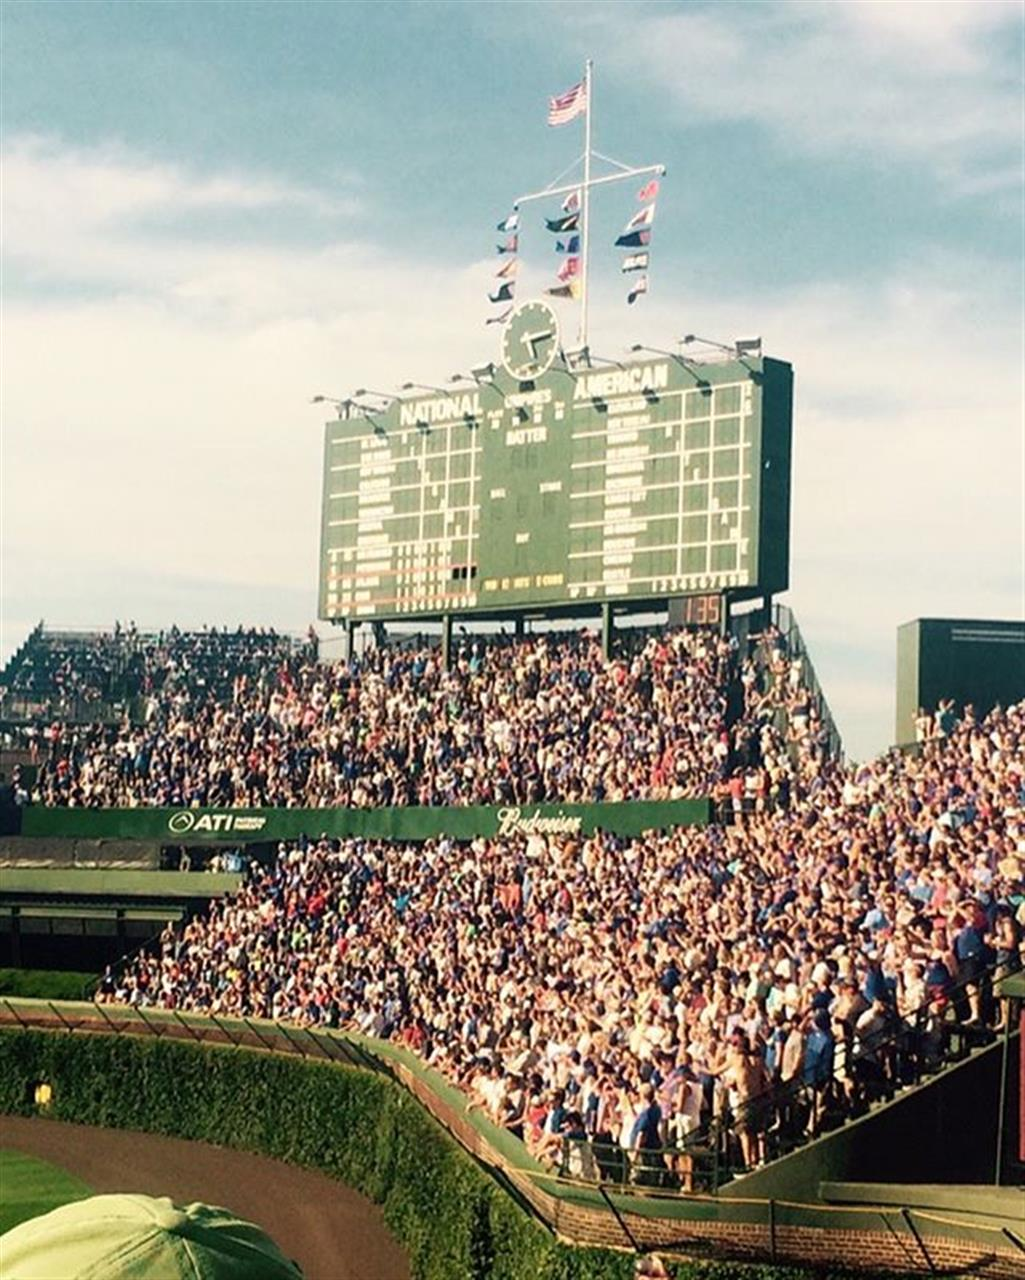 It's Opening Day!!! Here's some of our favorite memories from iconic #WrigleyField in the heart of #Lakeview .. .. .. #chicago #chicagocubs #lakeview #everybodyin #letsgocubs #baseball #spring #rizzo #heyward #bryant #leadingrelocal #bairdwarner #livelocal #hometown